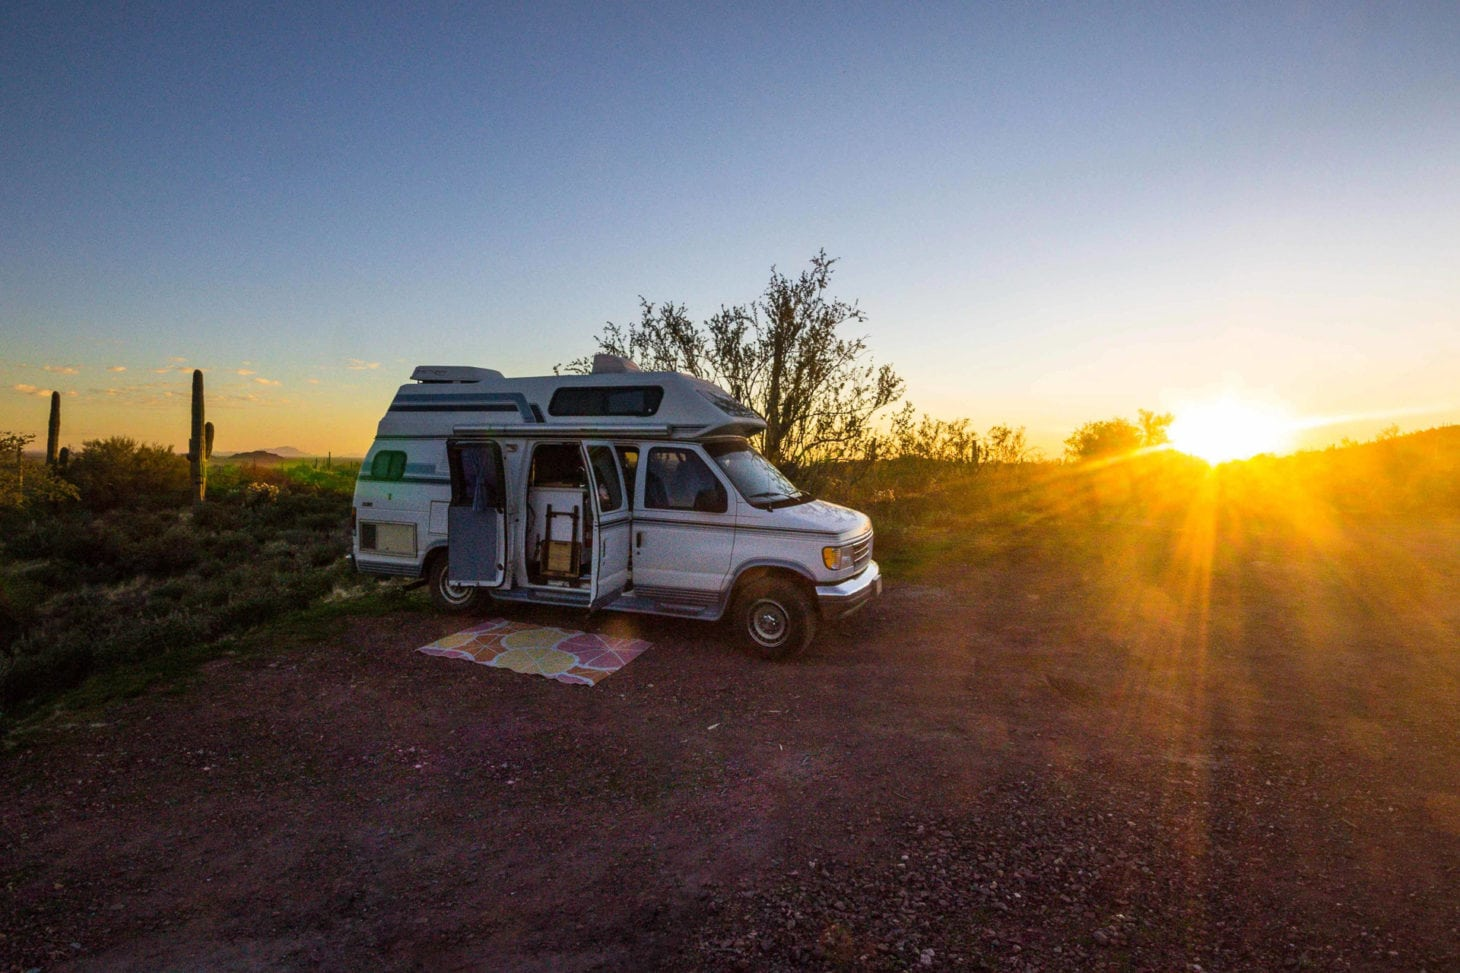 Van parked at a boondocking location during sunset